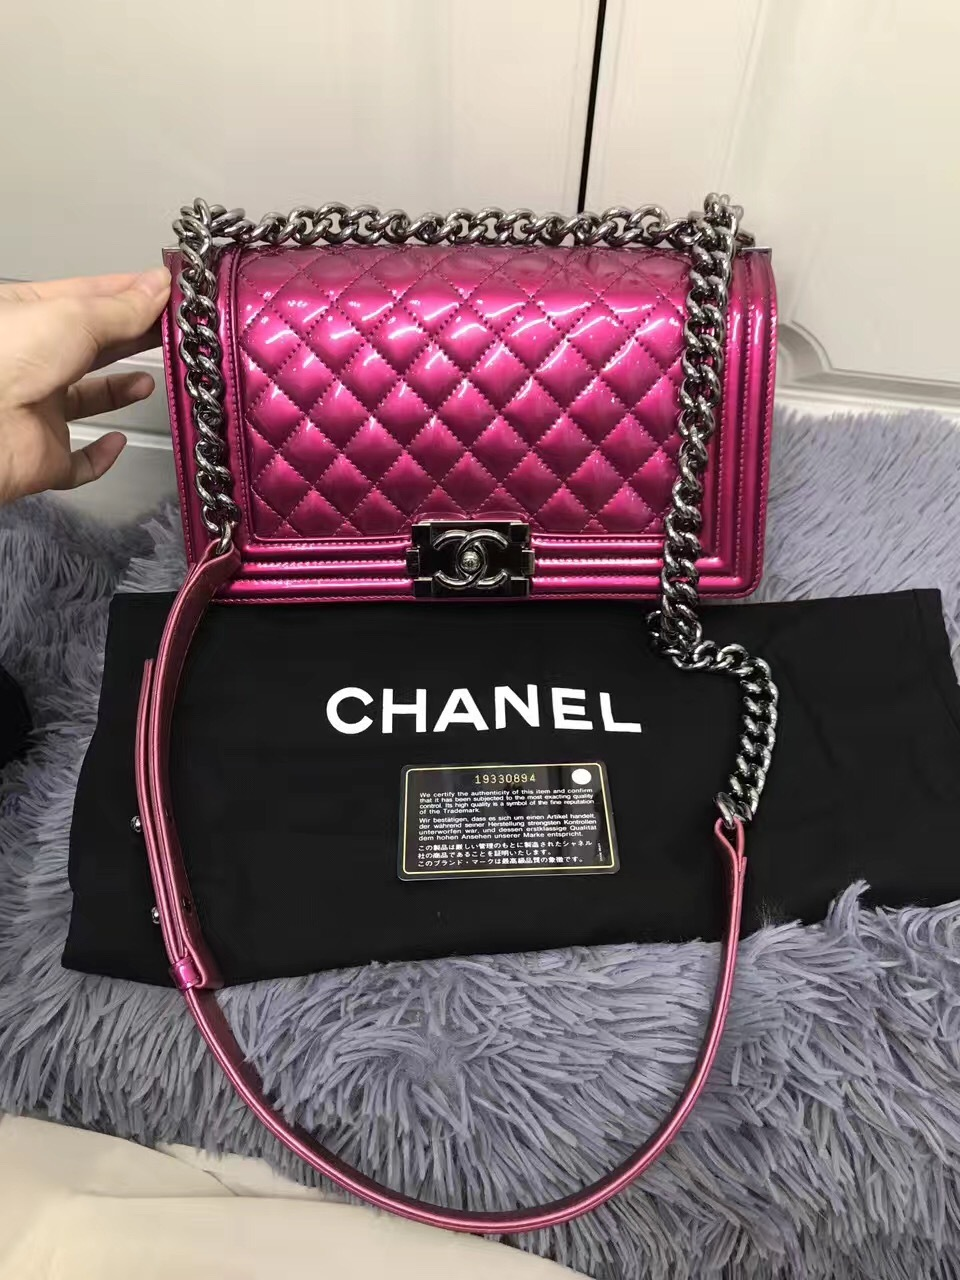 6a3dce7dae52dd AUTHENTIC CHANEL LIMITED EDITION METALLIC PURPLE PINK PATENT MEDIUM ...